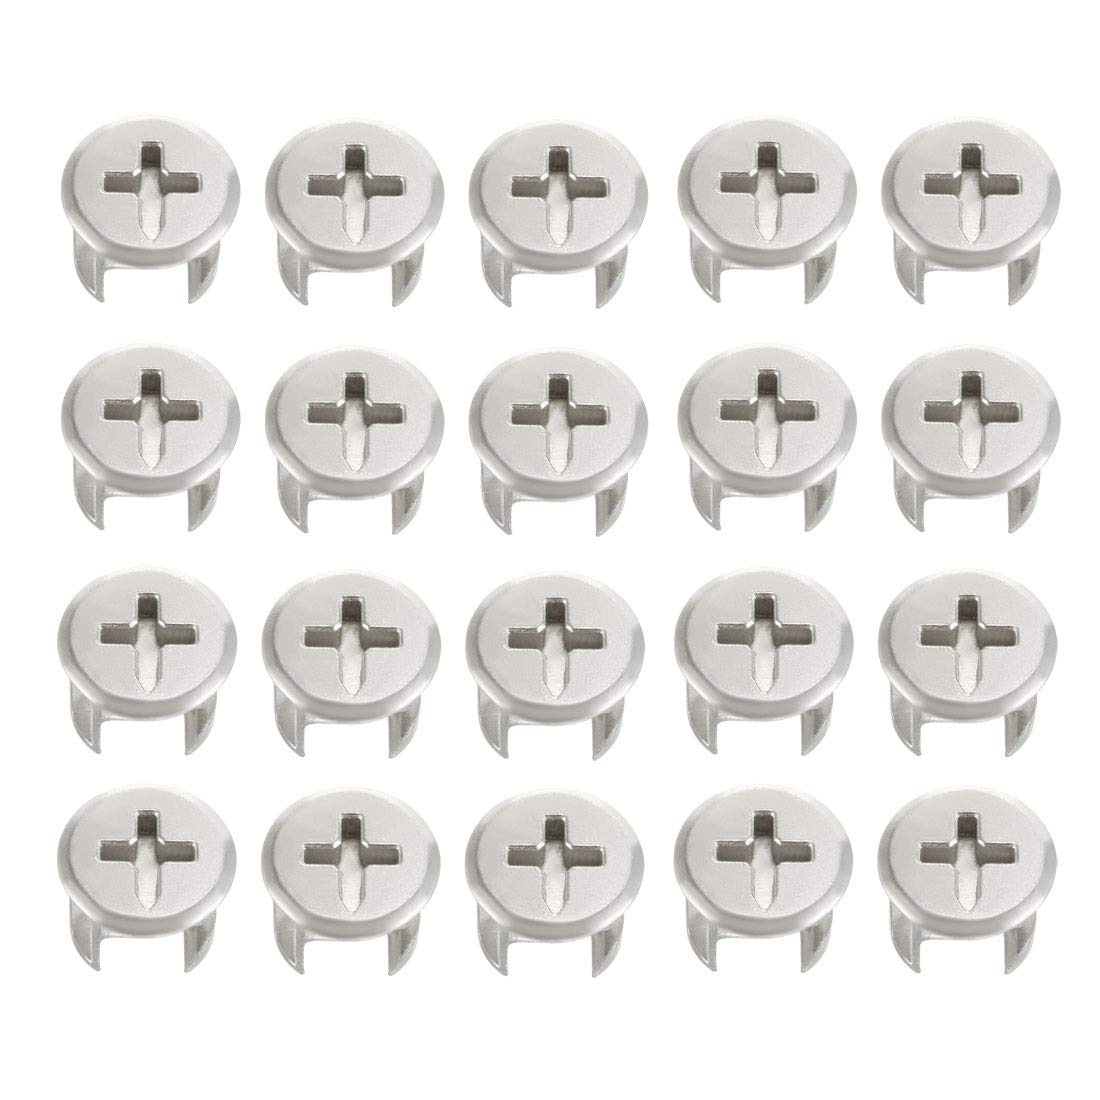 uxcell 20 Pcs Furniture Connecter Cam Lock Fittings 13mm x 11mm for Cabinet Drawer Dresser and Wardrobe Furniture Panel Connecting